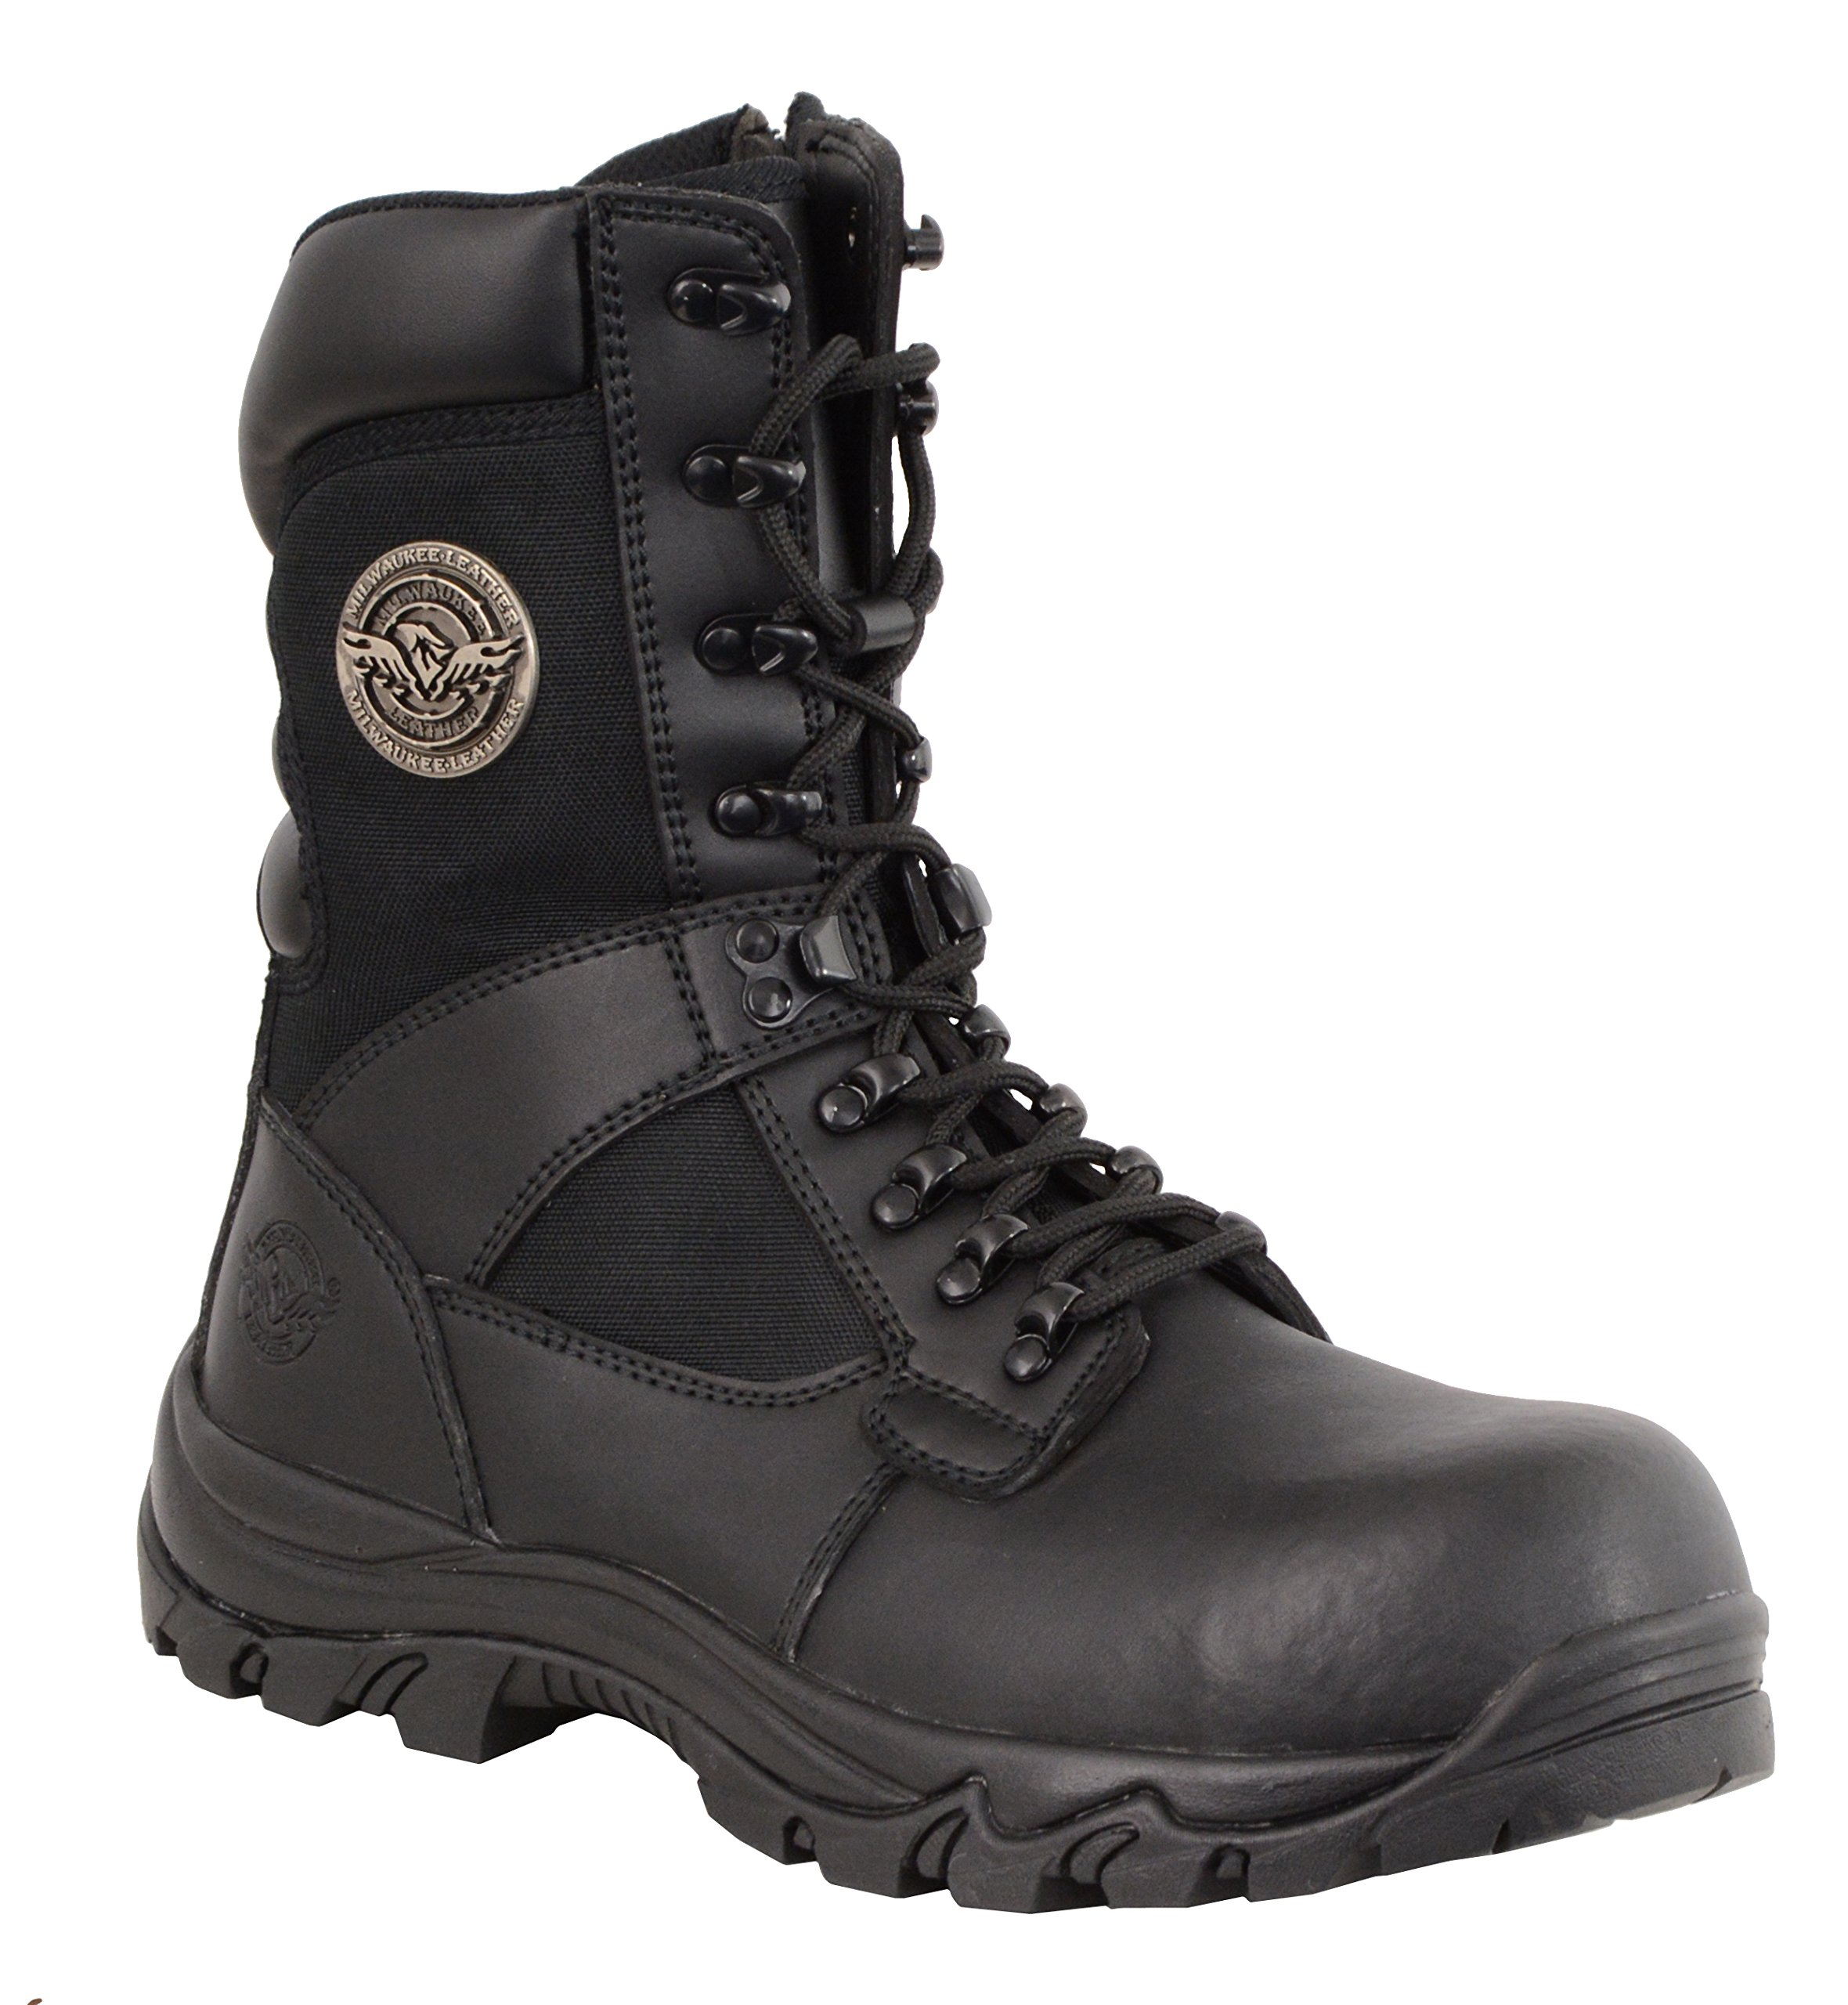 Milwaukee Performance Men's Leather Tactical Boots with Composite Toe (Black, Size 10)